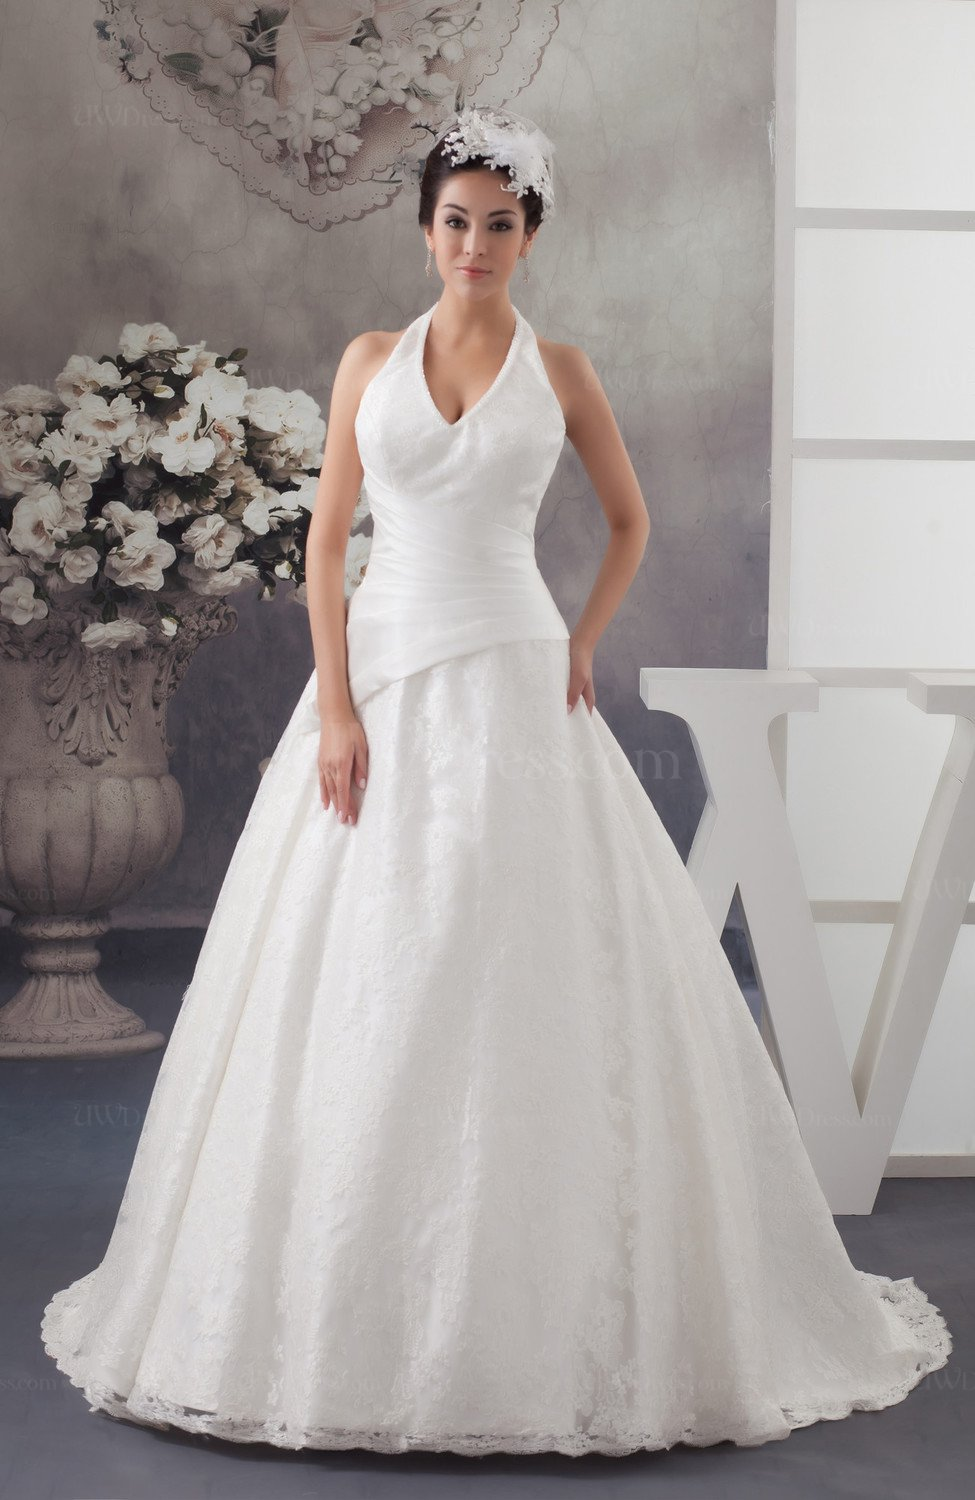 Lace bridal gowns glamorous plus size formal halter spring for Halter top wedding dresses plus size